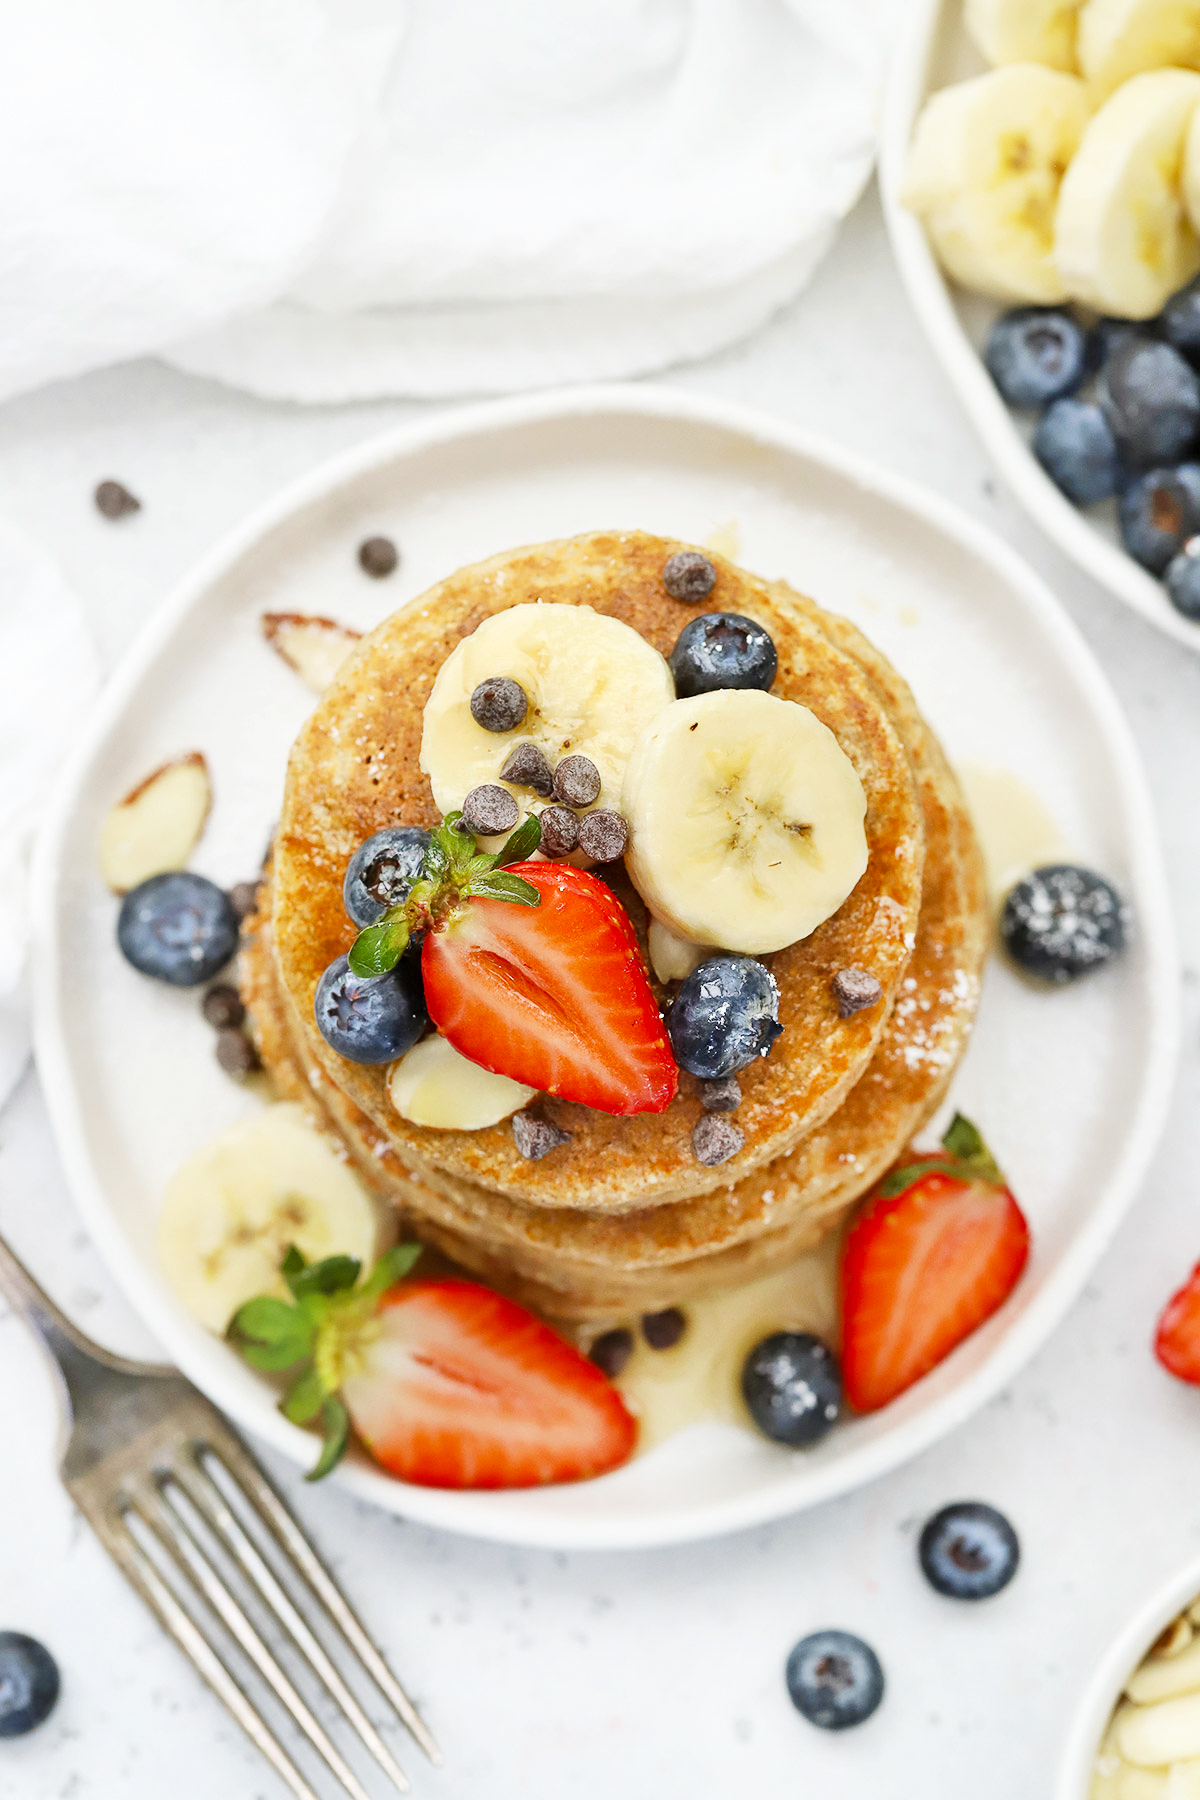 Overhead view of a stack of blender banana oatmeal pancakes topped with sliced bananas, fresh berries, and syrup.